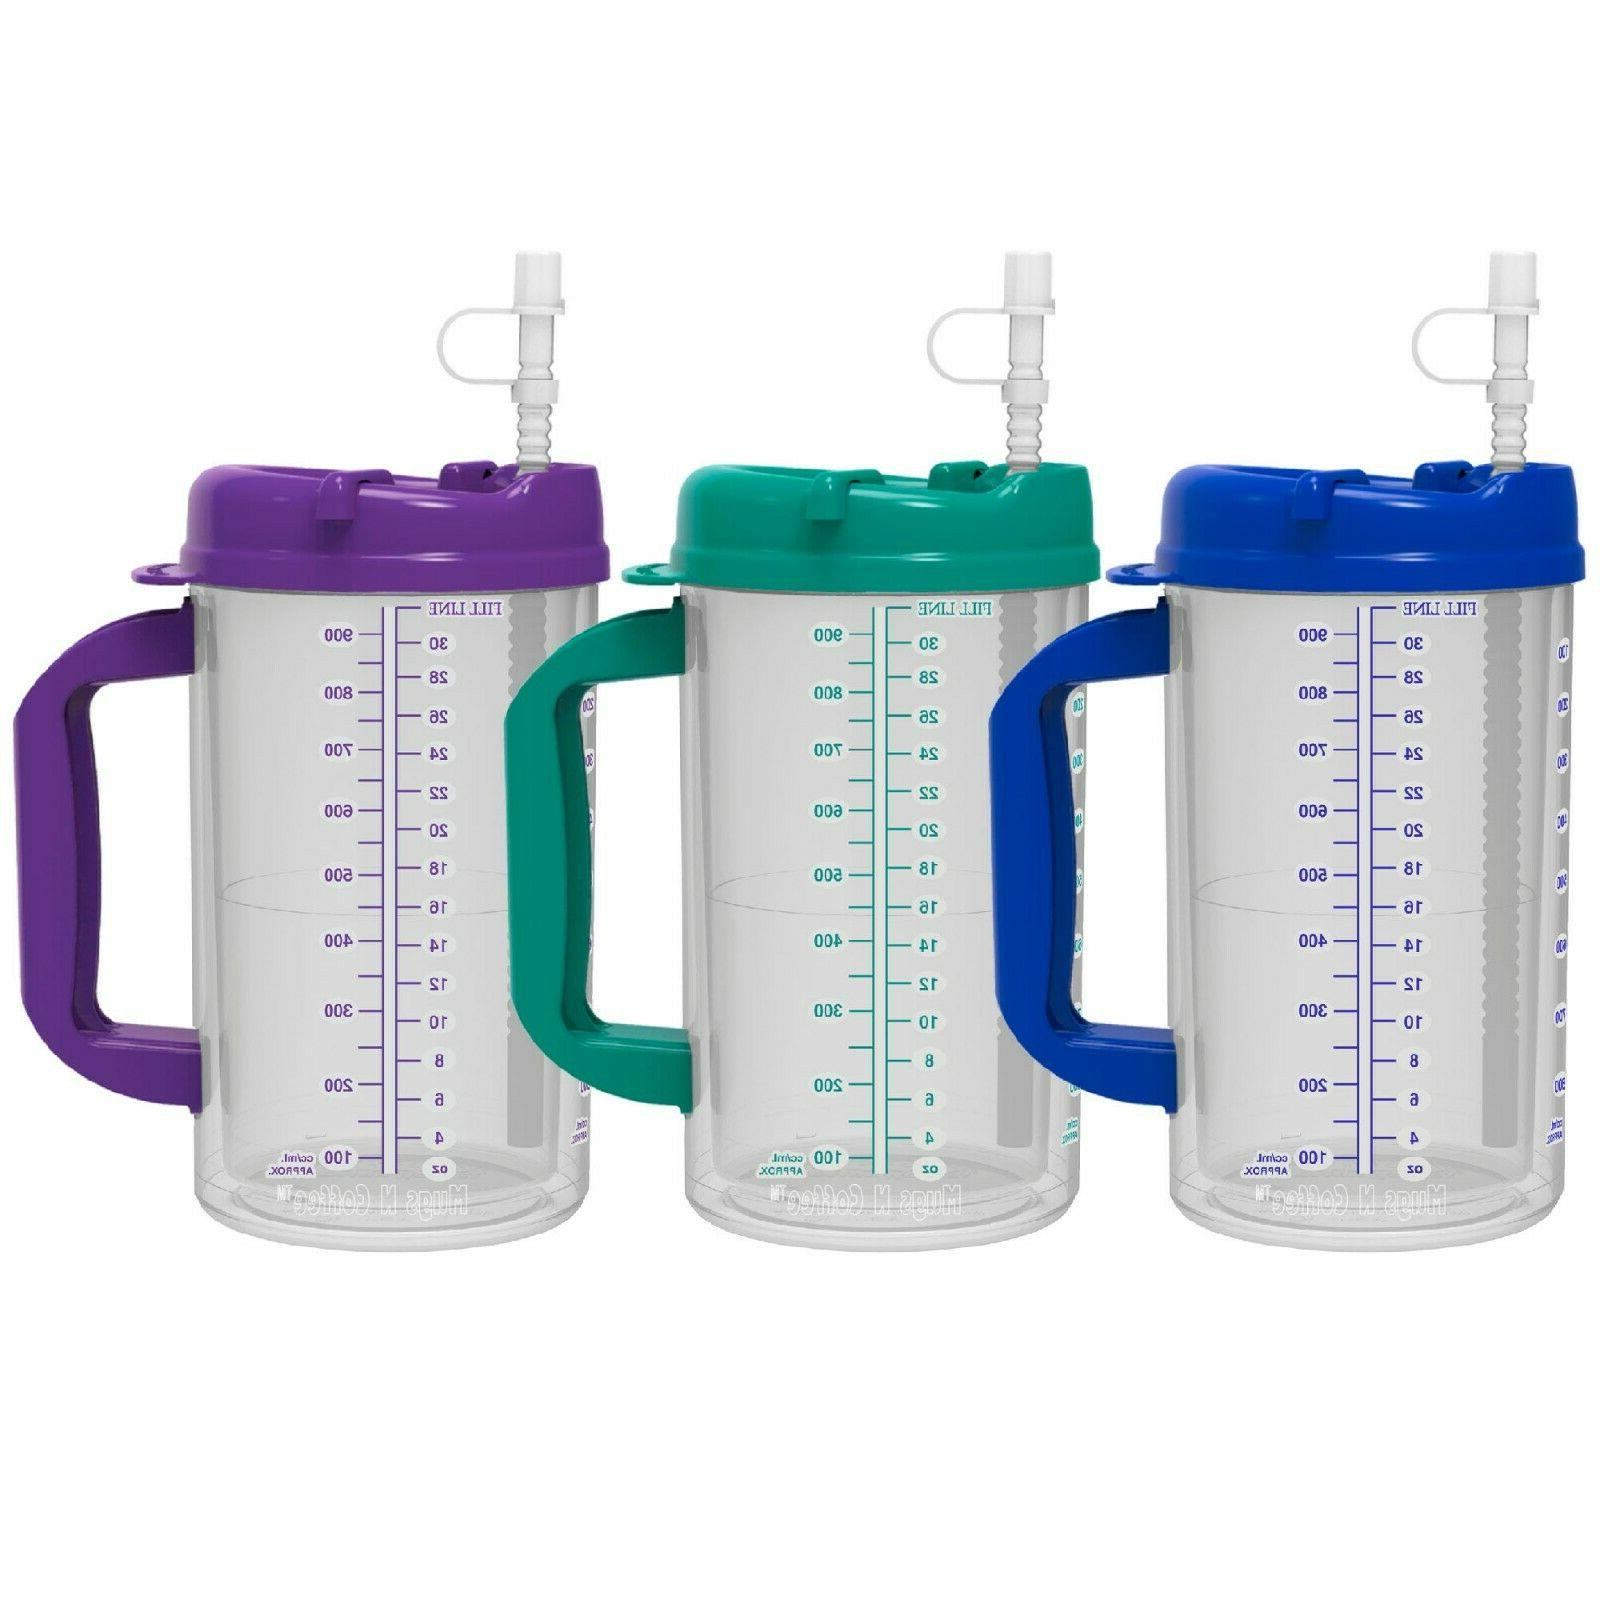 32 oz double wall insulated hospital mugs